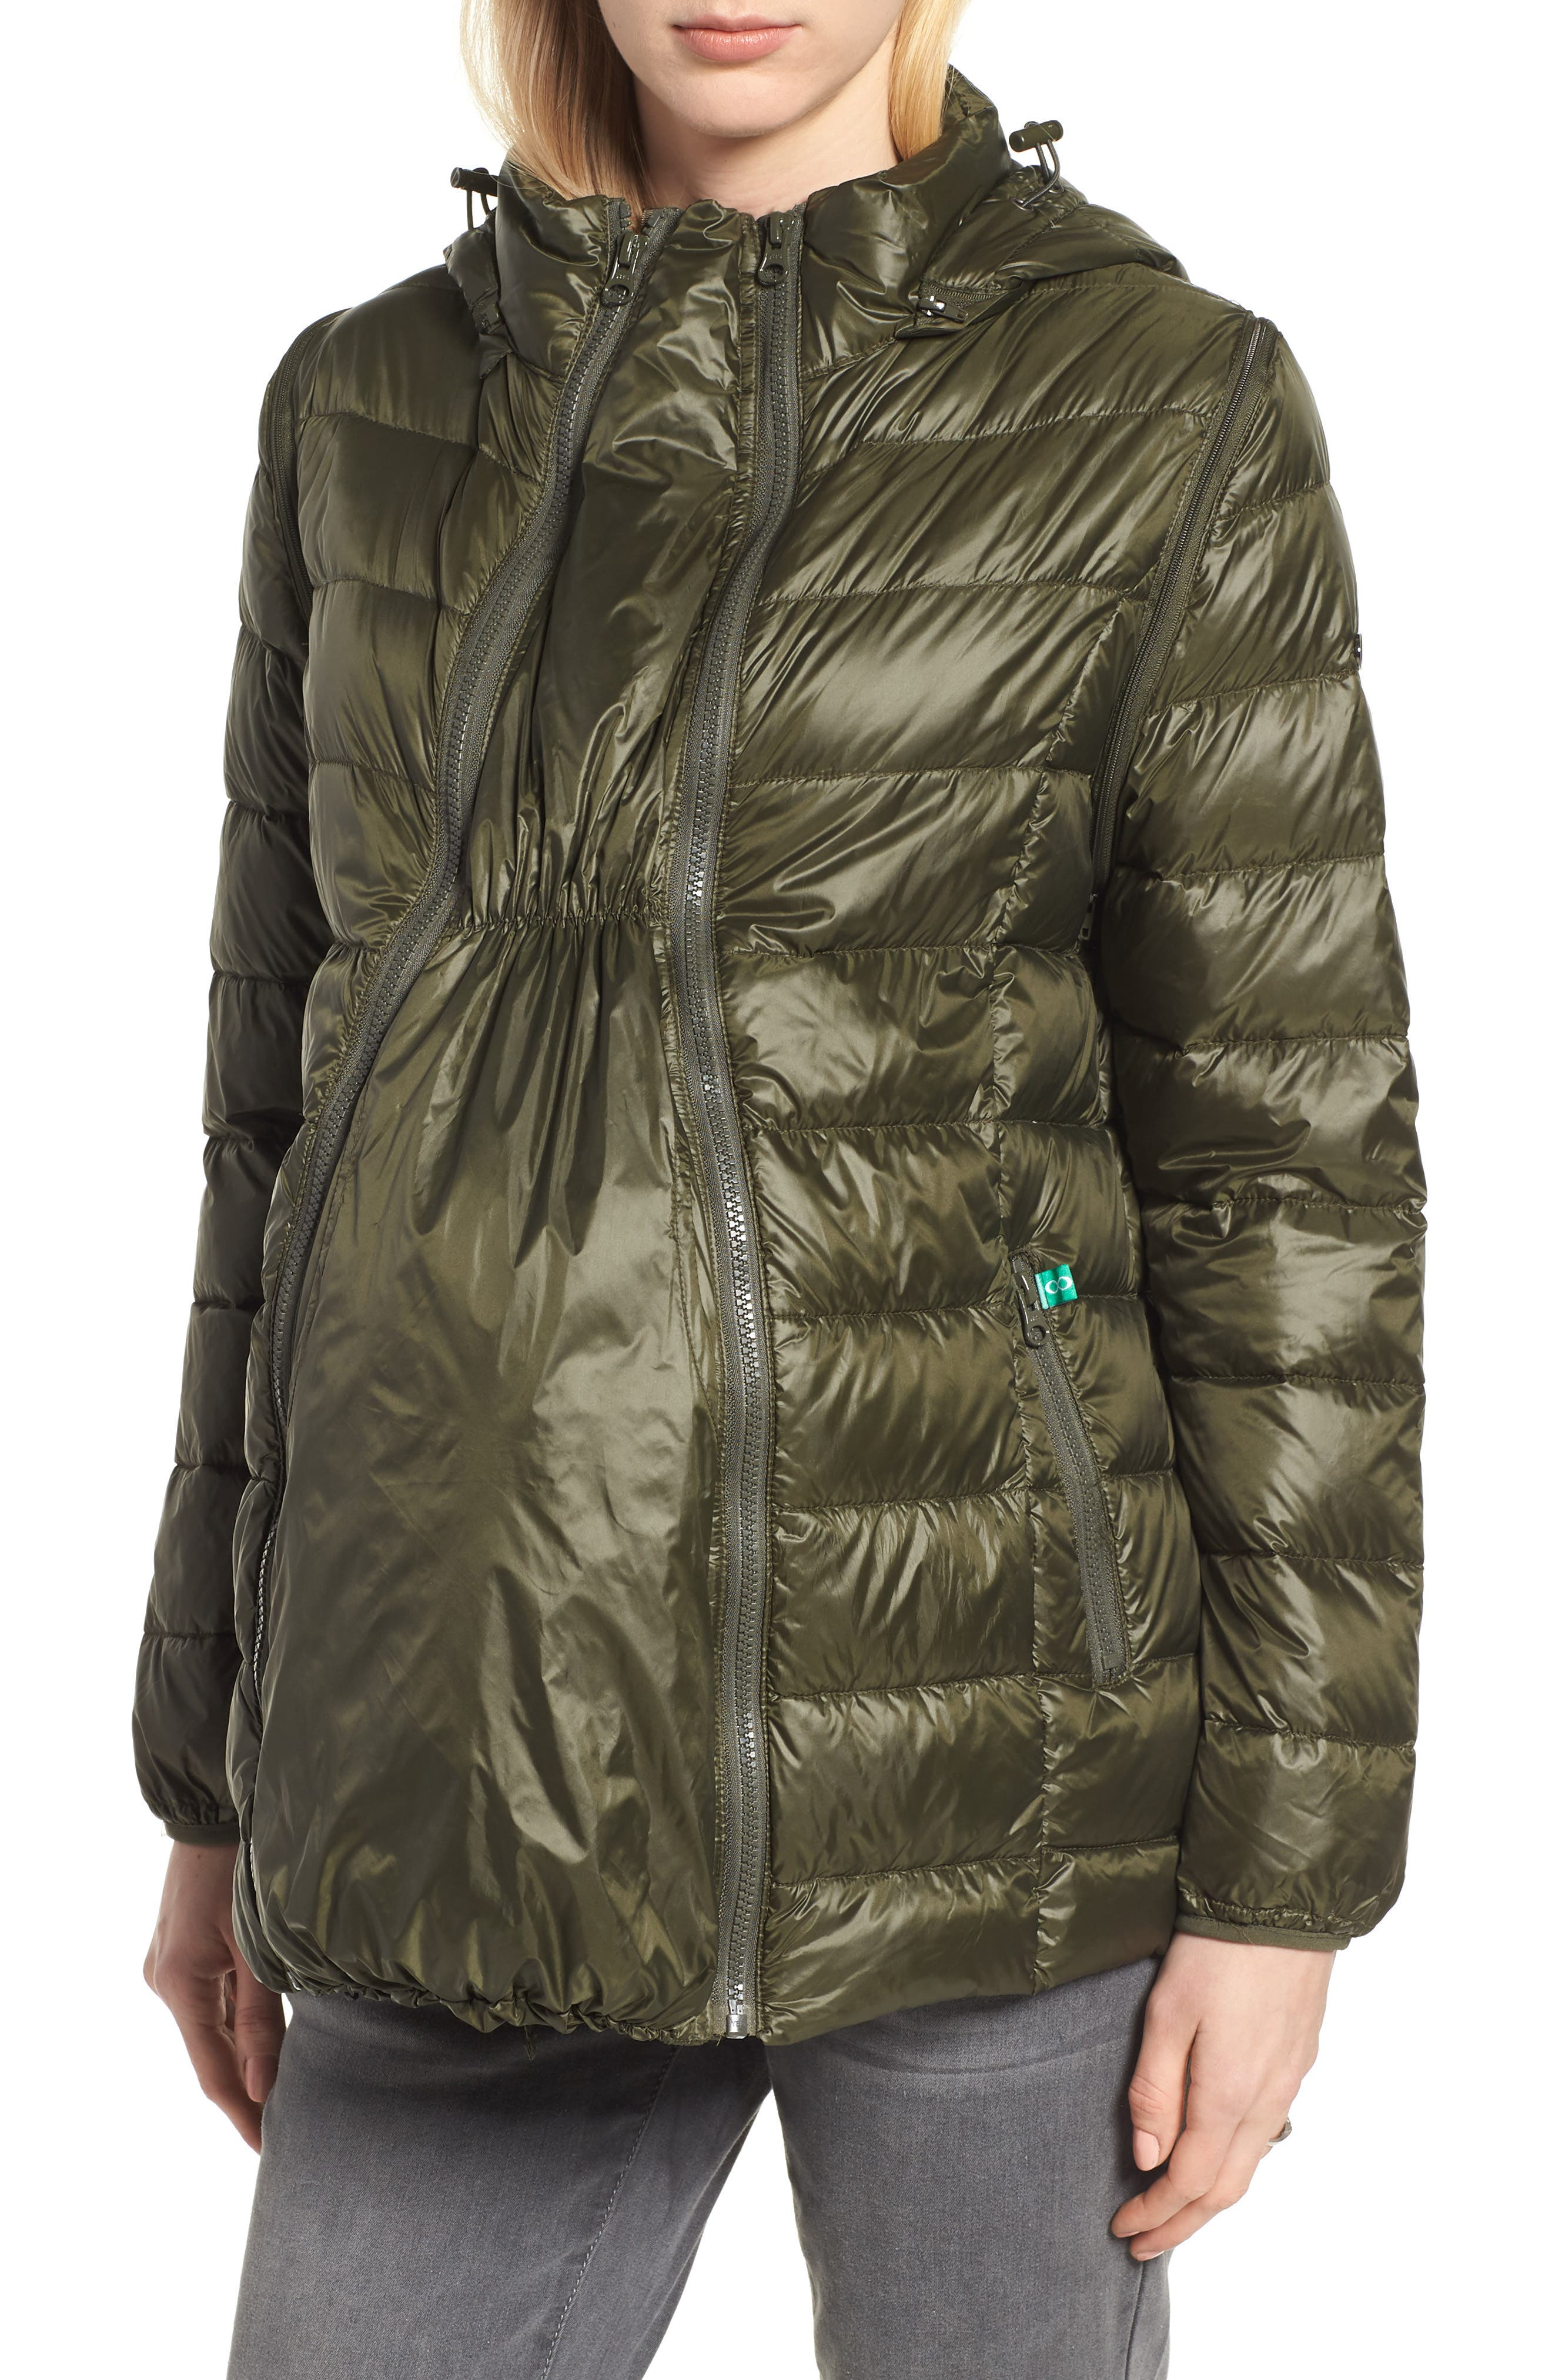 Lightweight Puffer Convertible 3-in-1 Maternity Jacket,                             Main thumbnail 1, color,                             KHAKI GREEN